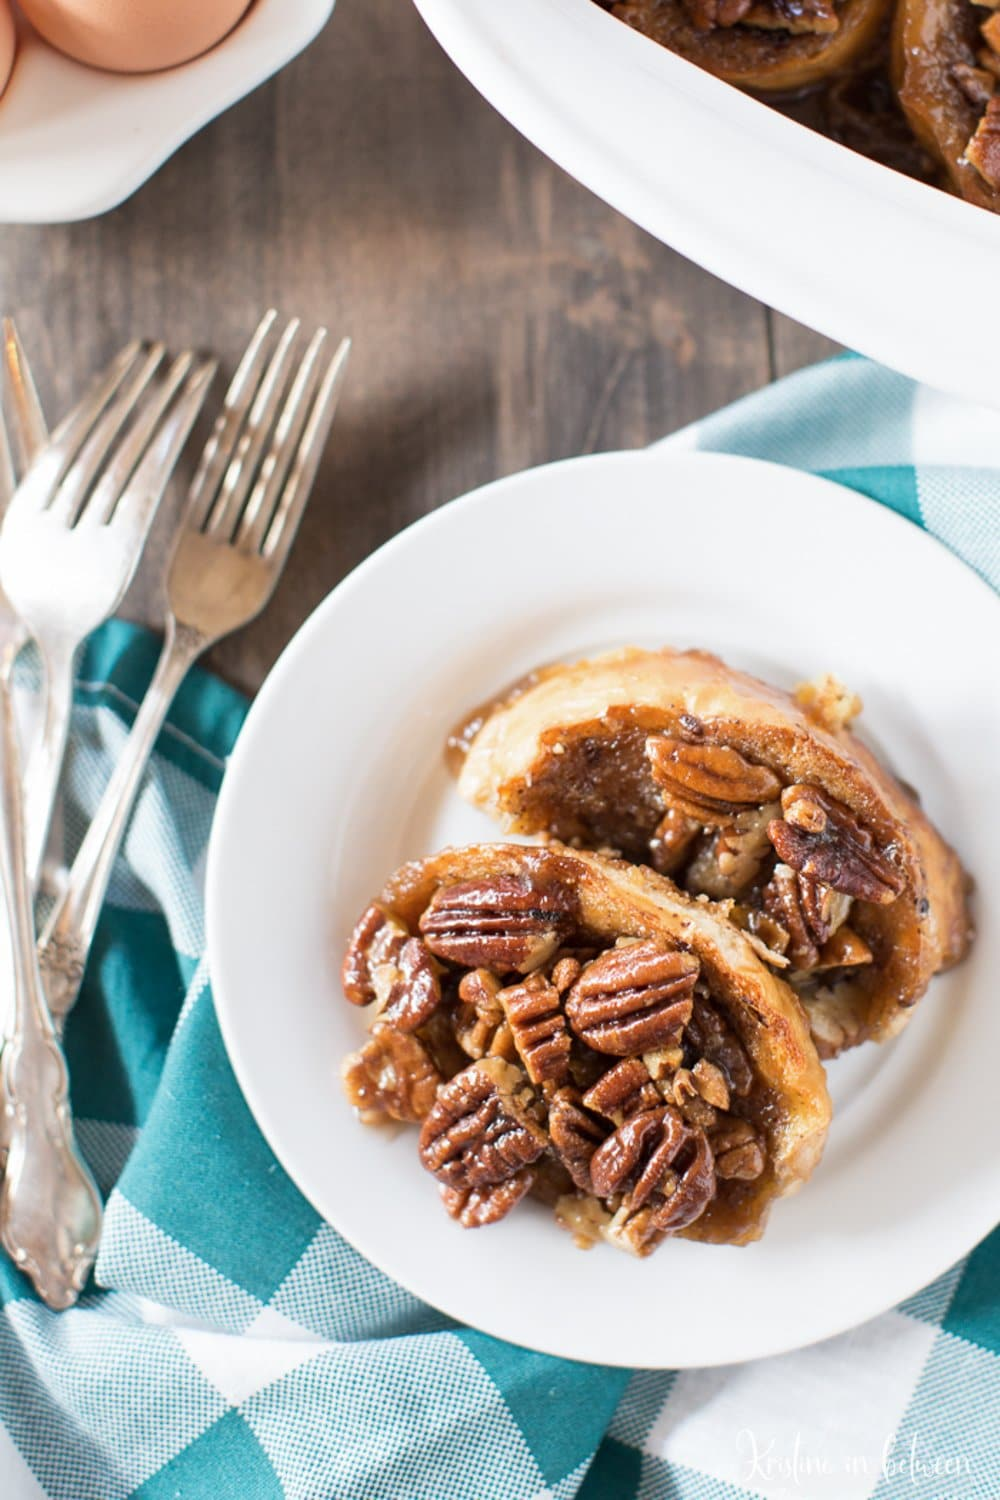 One of my favorite breakfasts is this pecan caramel French toast bake!